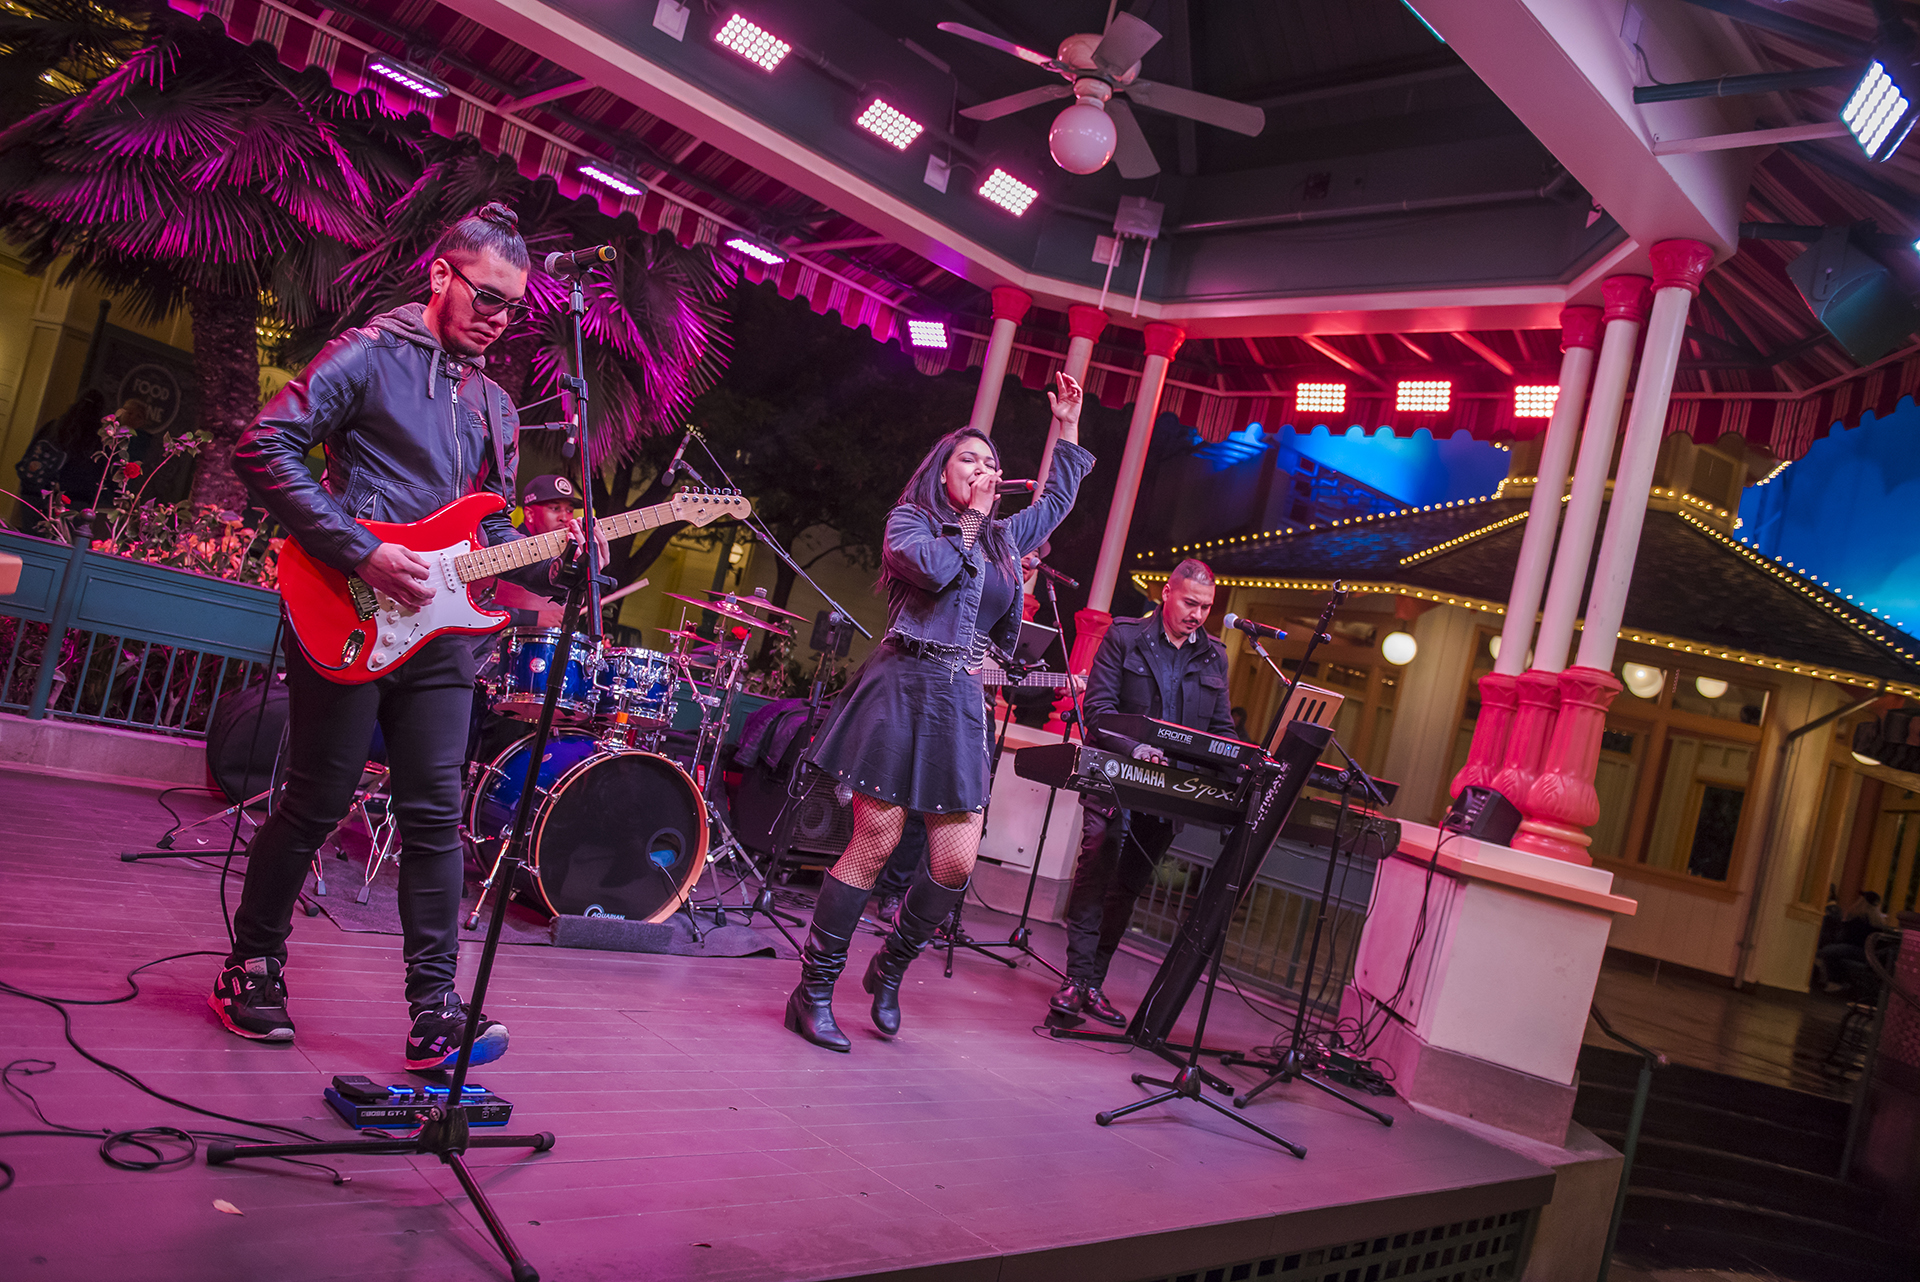 Her band provides a jukebox of hits across the past several decades.